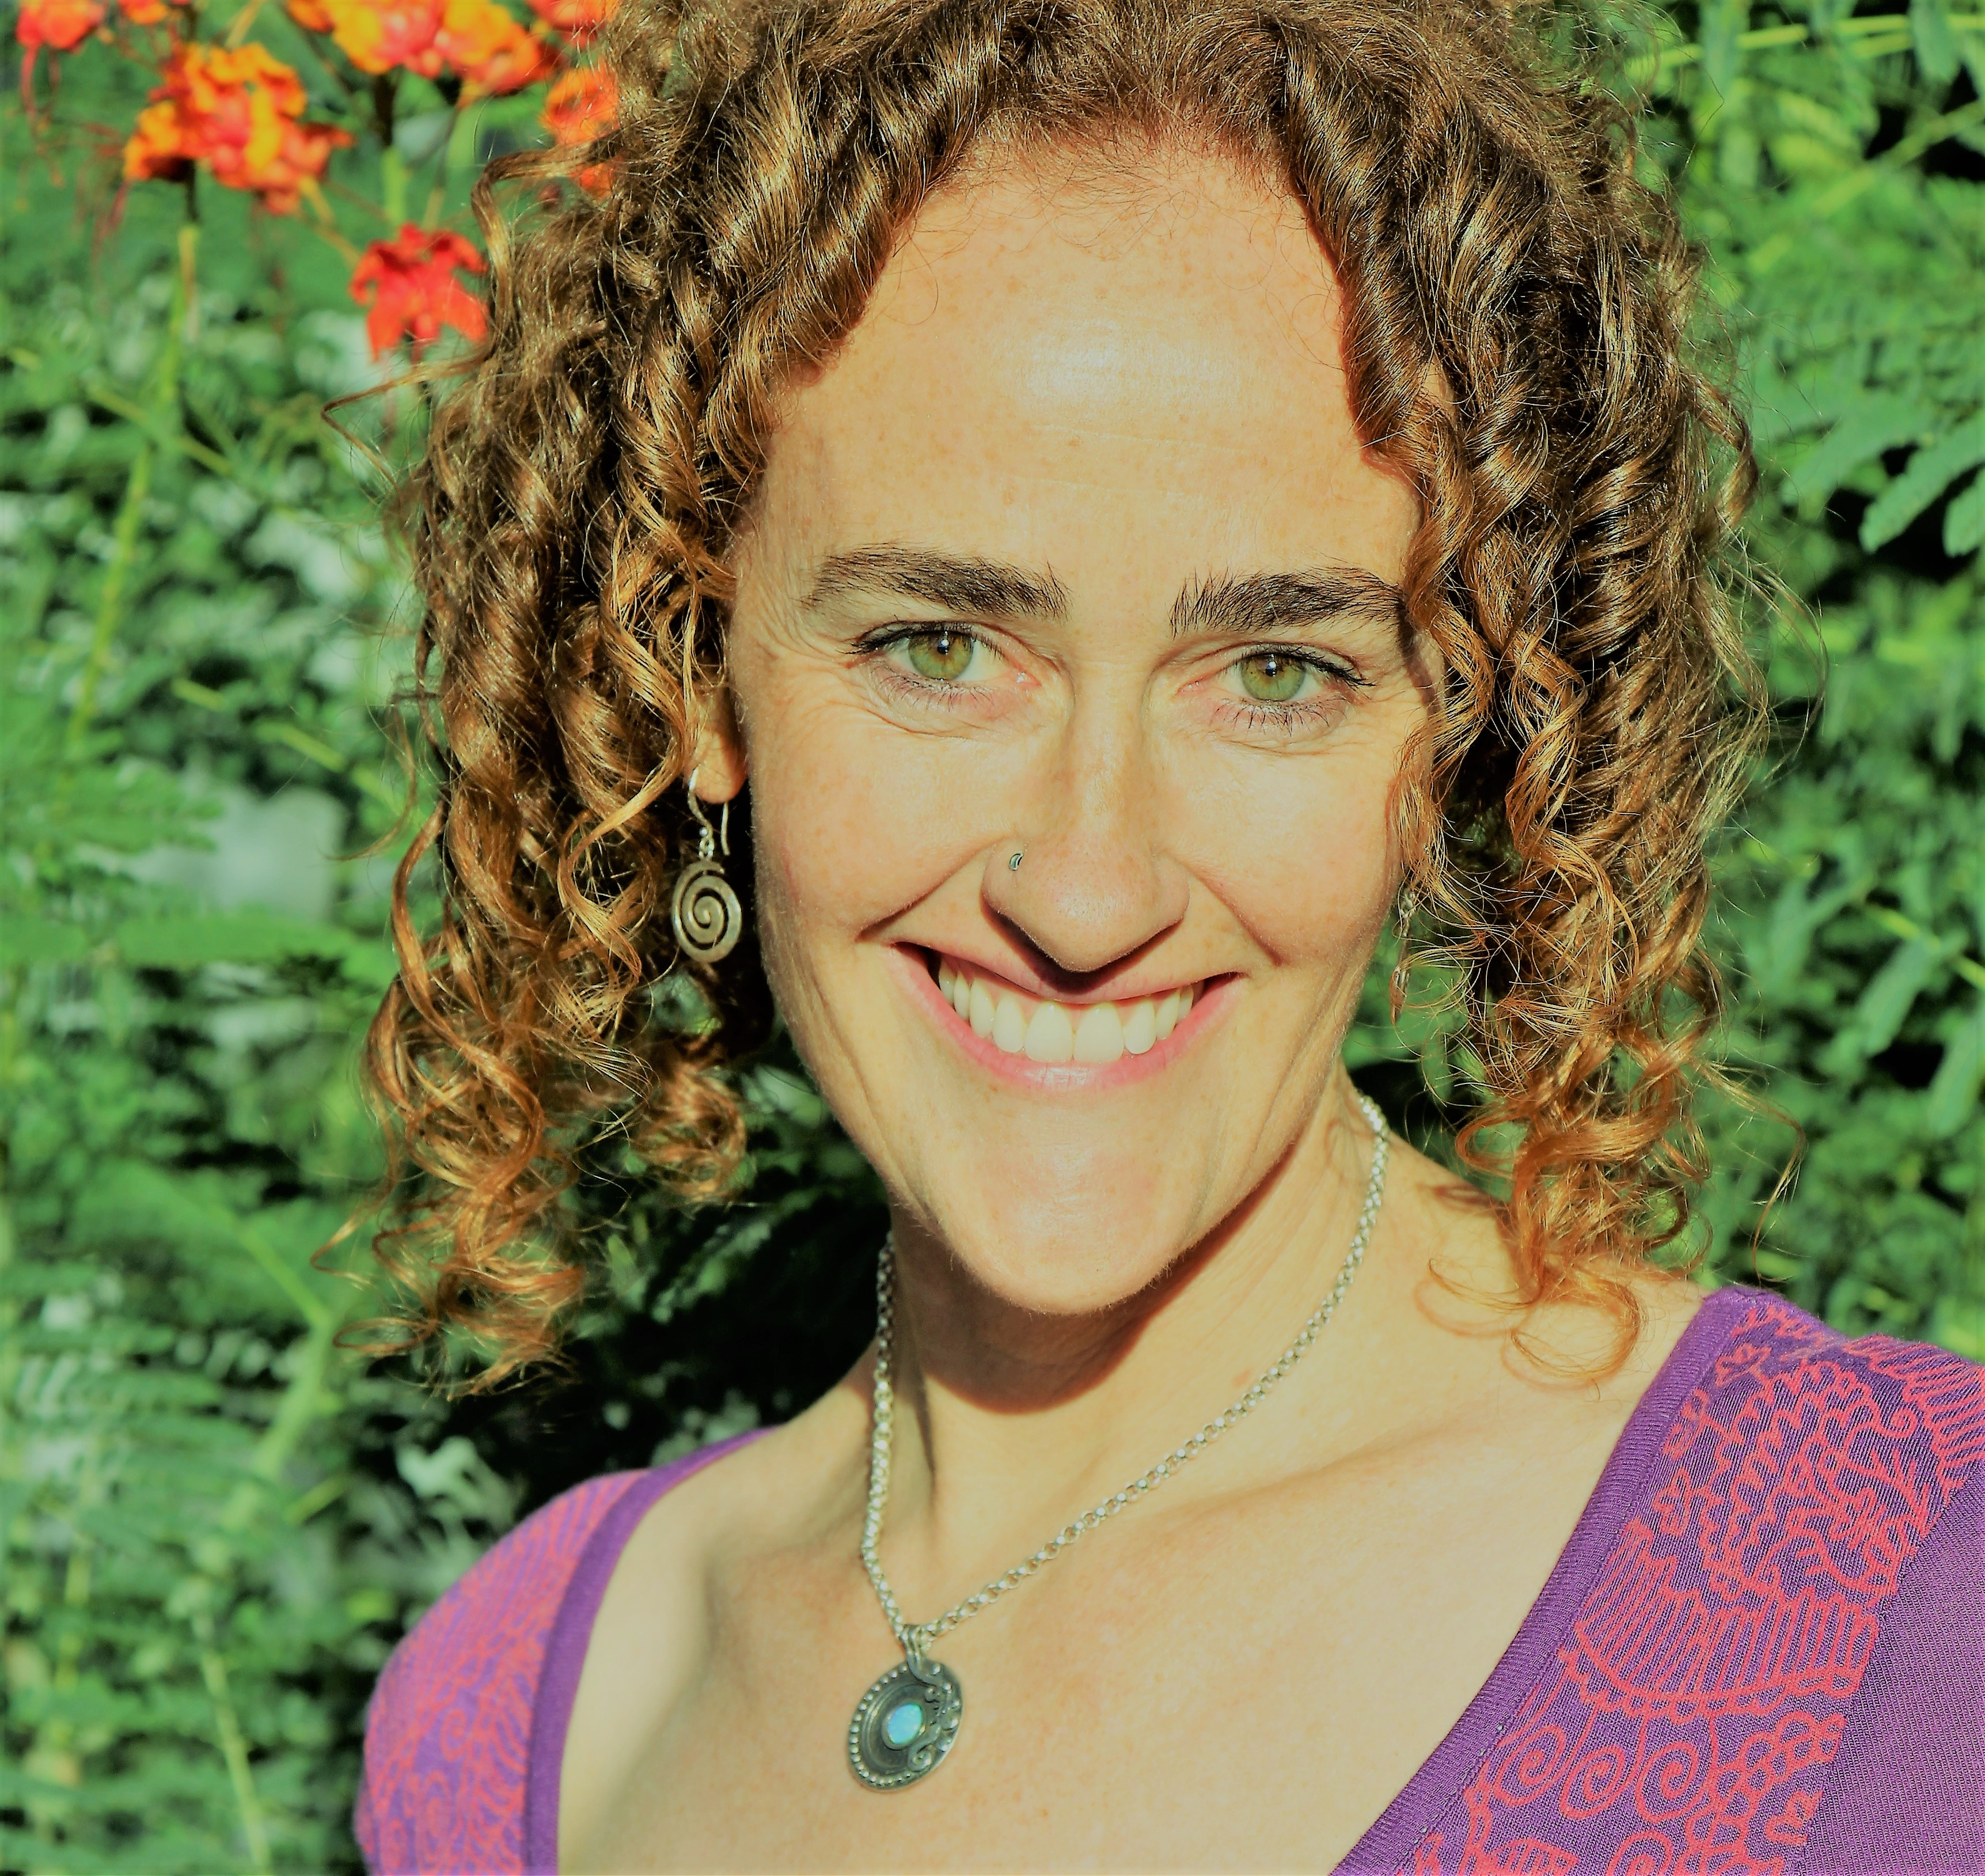 About - Dr Clare Johnson Lucid Dream Author and Researcher